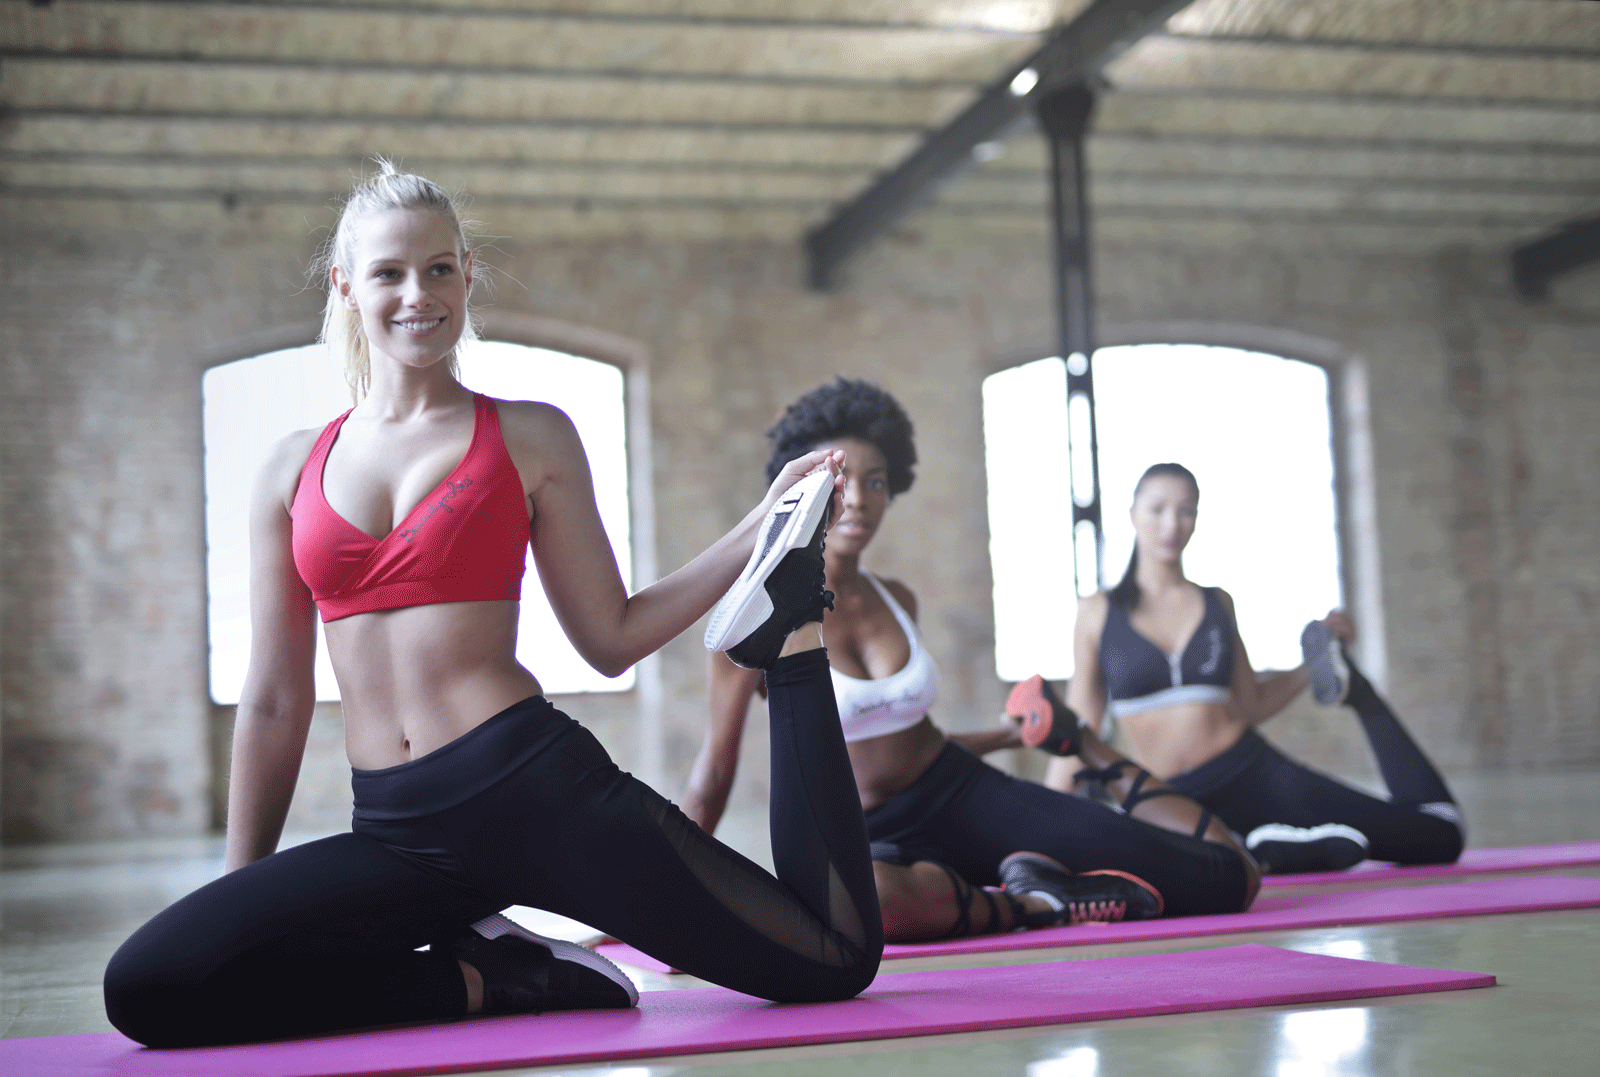 Women Doing Yoga | What Are The Best Types Of Yoga For Weight Loss?